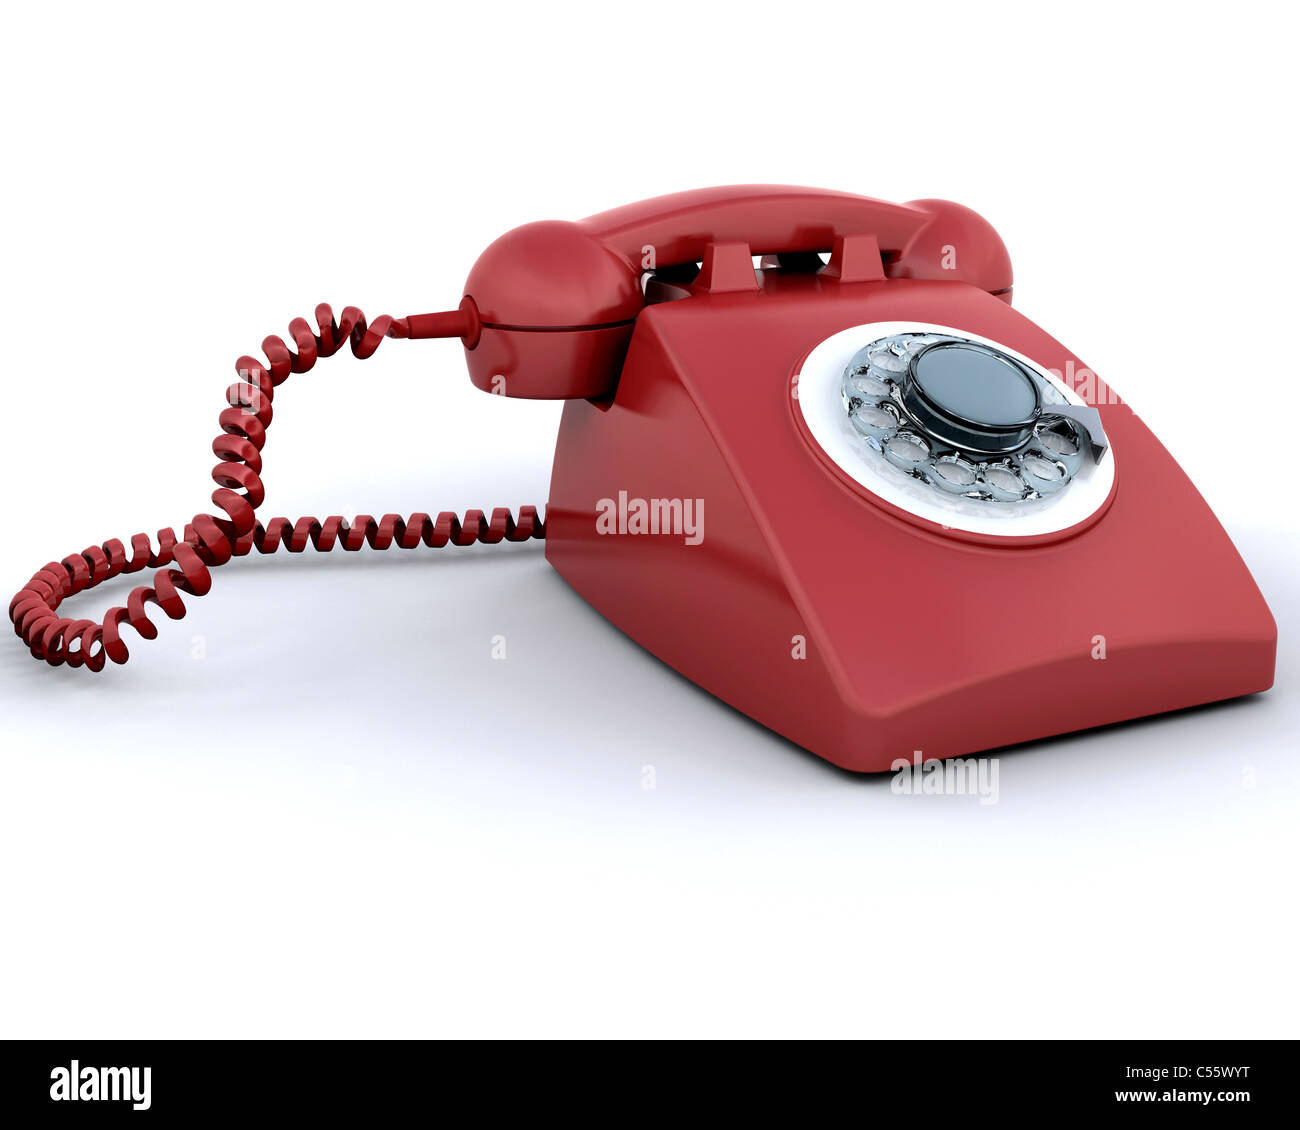 Retro styled telephone - Stock Image